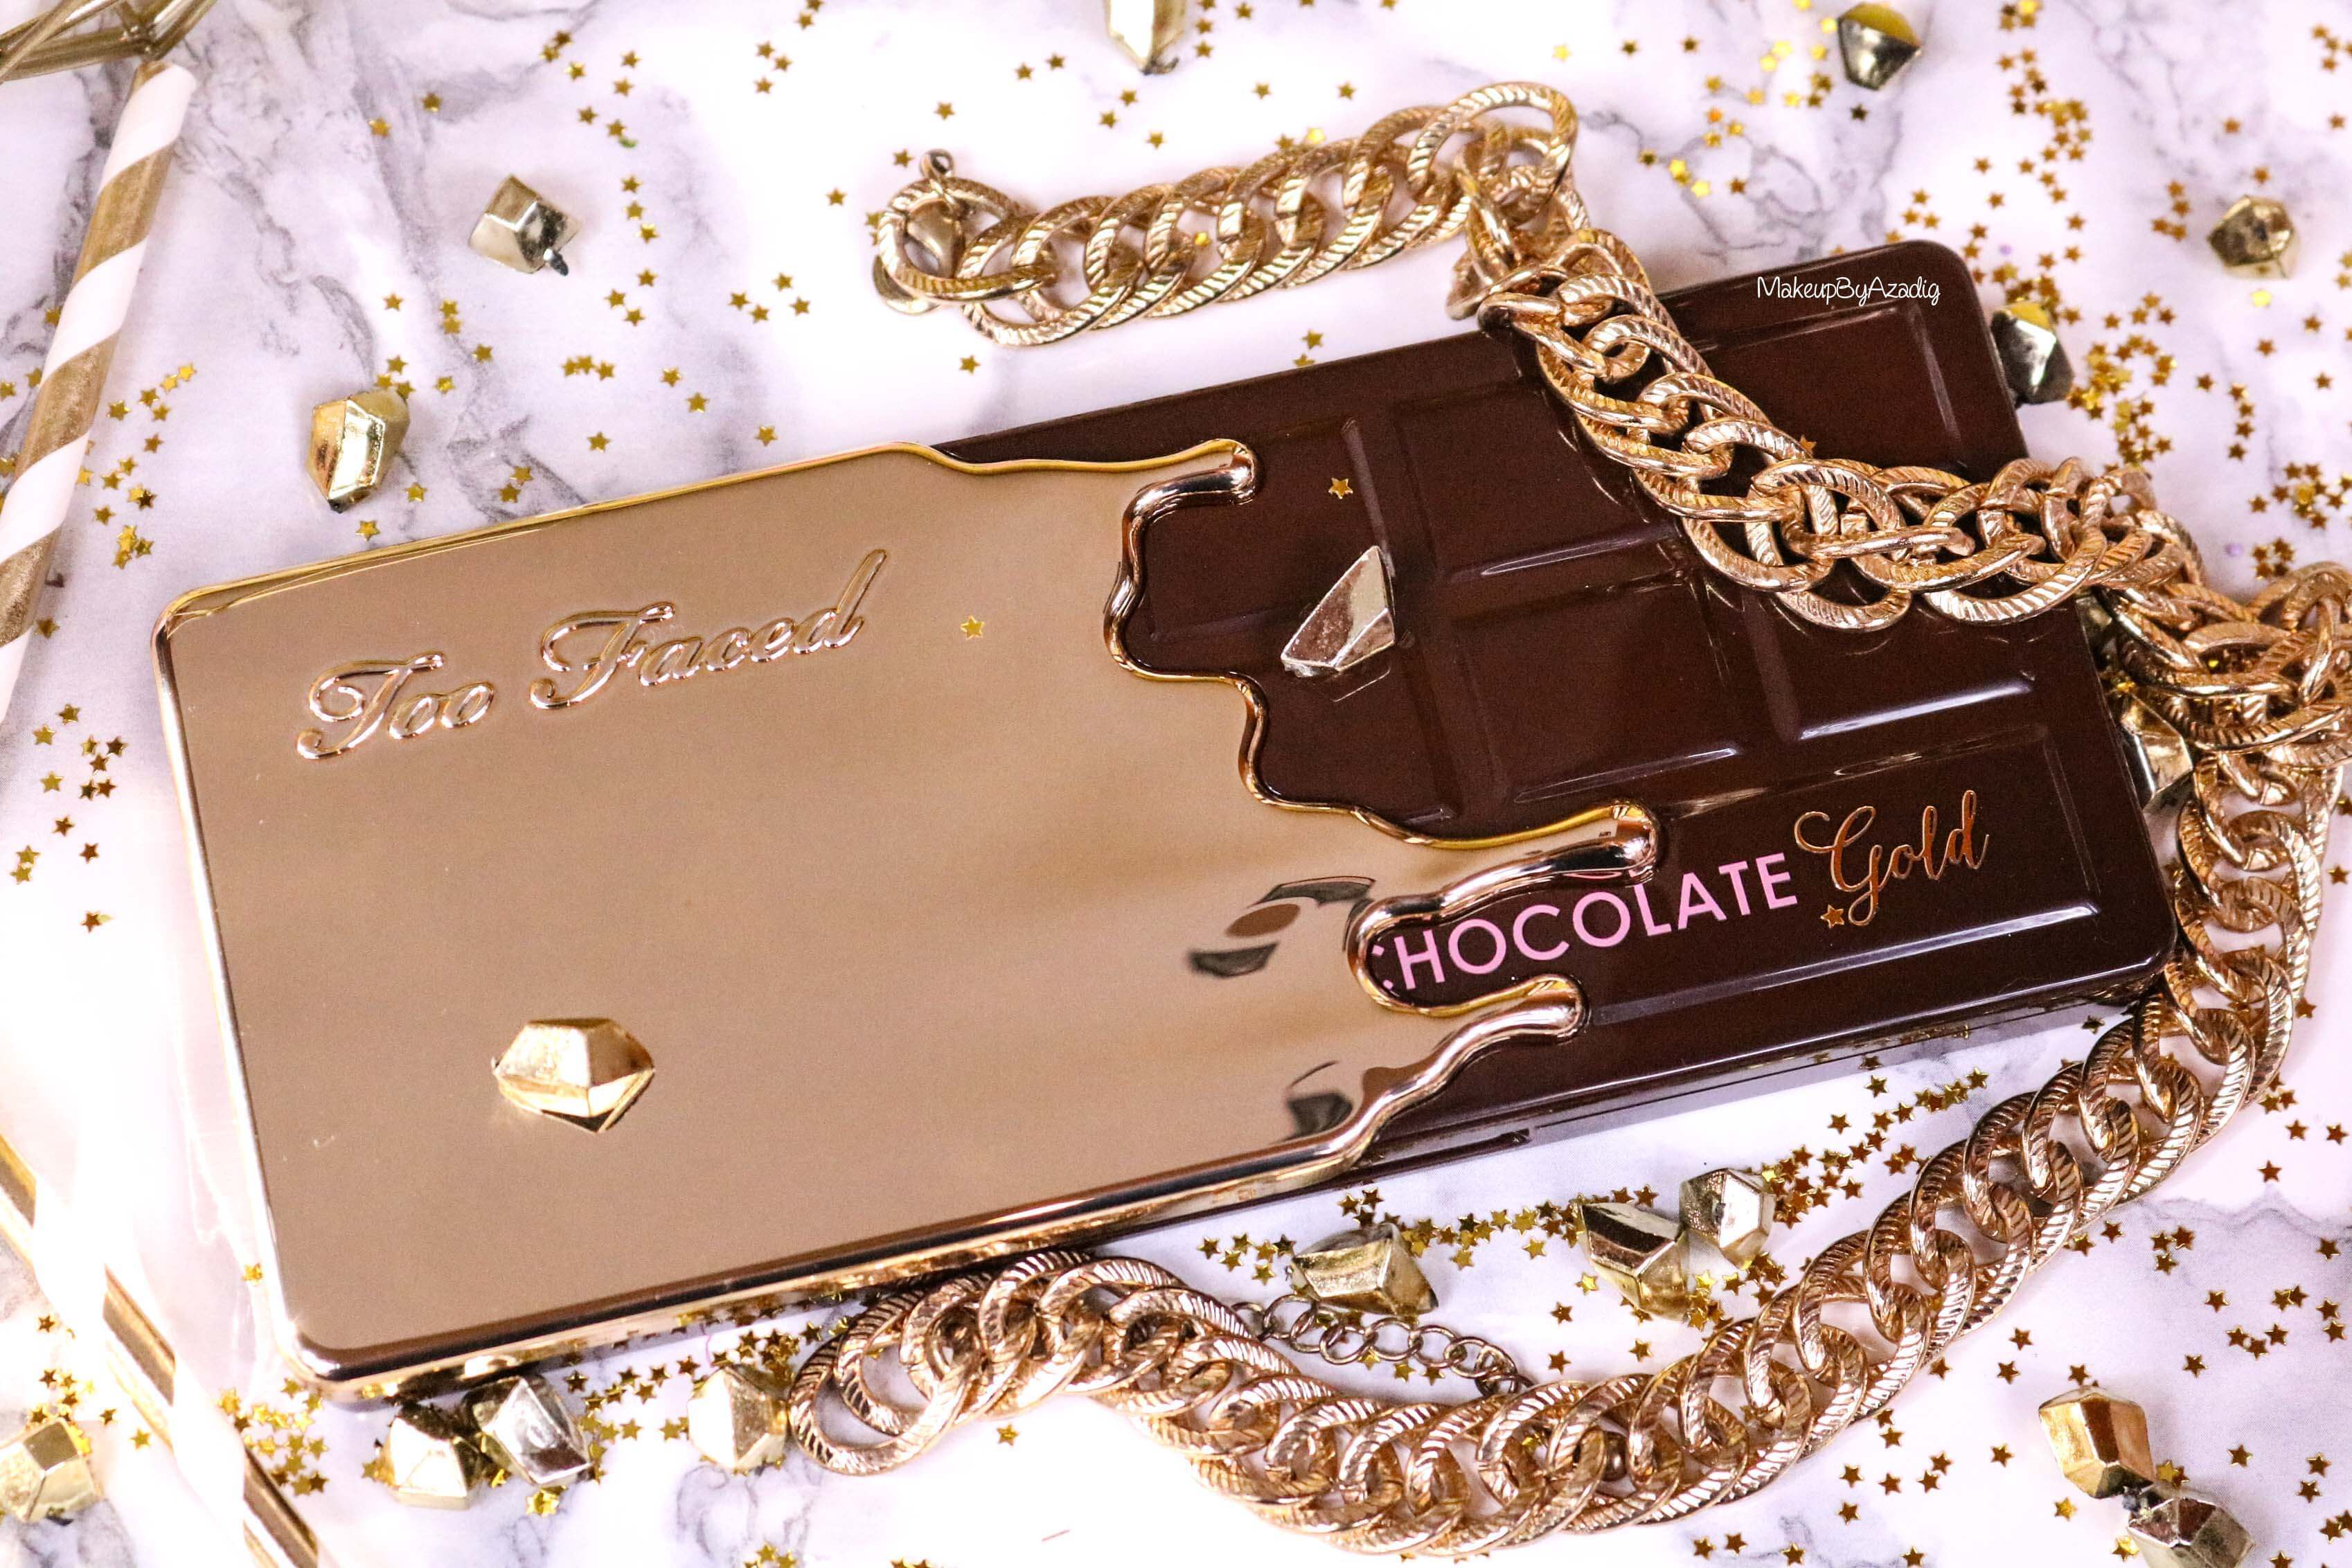 revue-palette-too-faced-chocolate-gold-review-swatch-swatches-avis-prix-makeupbyazadig-influencer-dessus